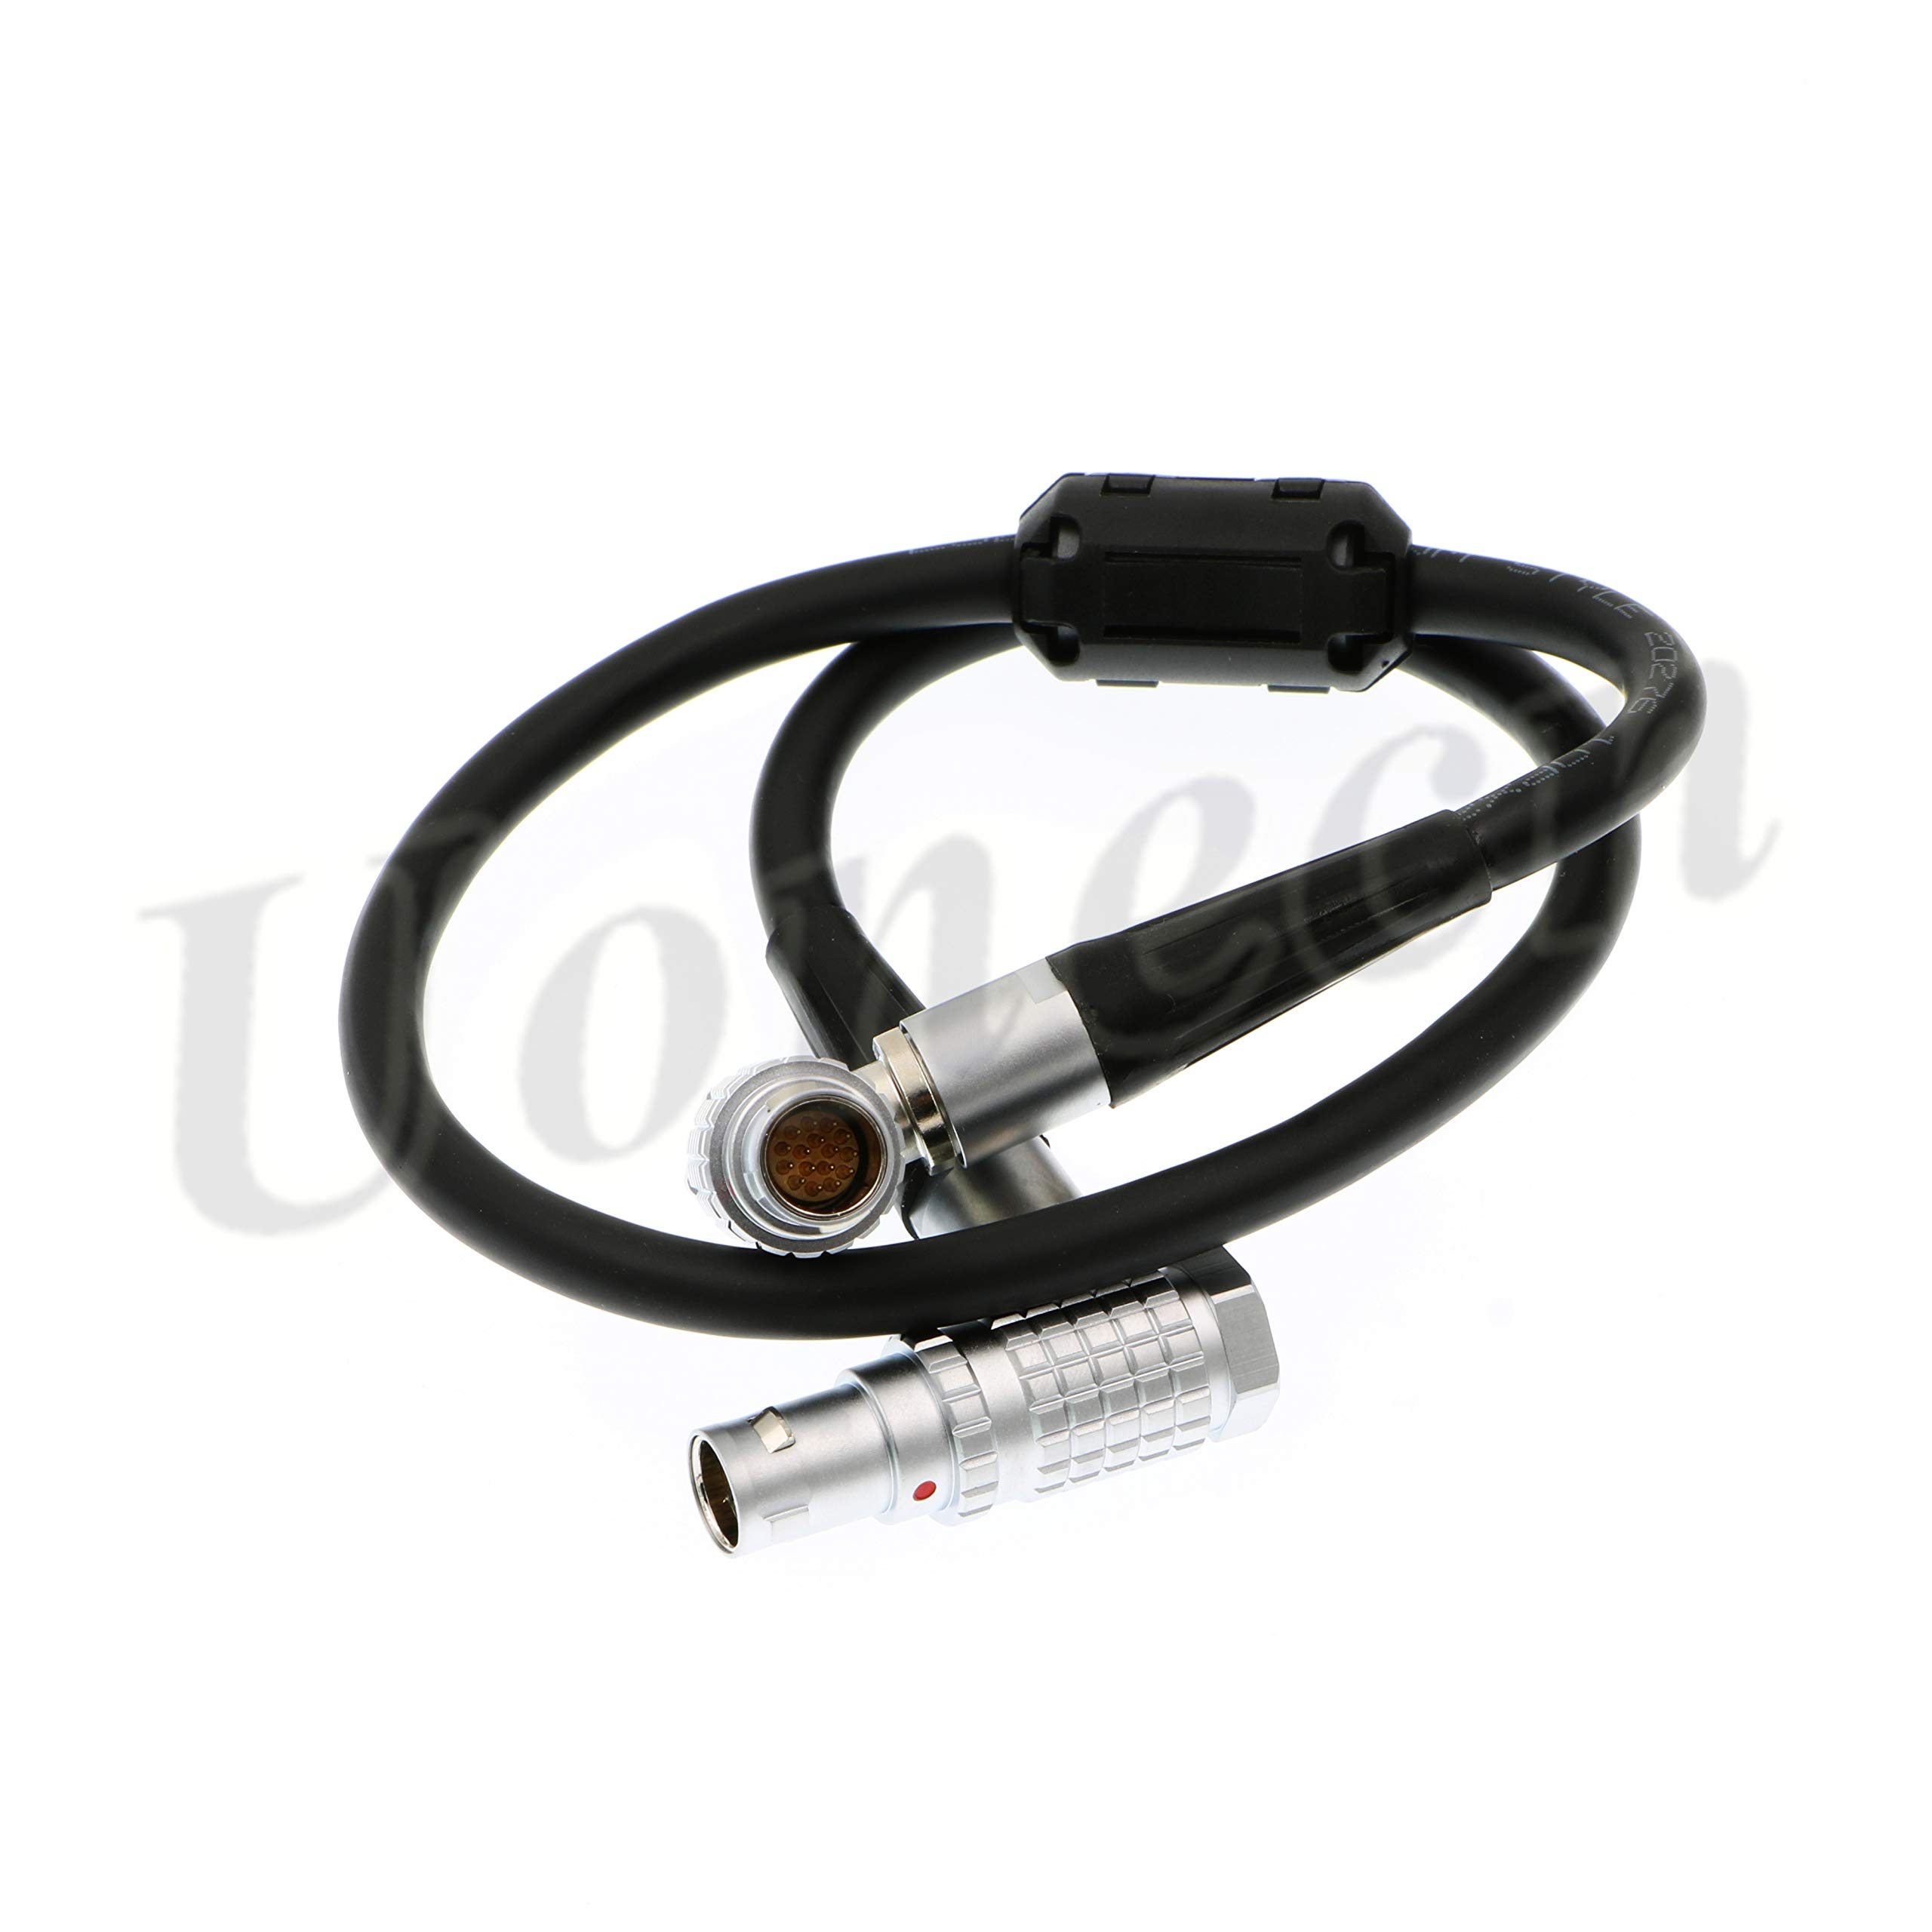 Uonecn LCD EVF Cable FHG.1b 16 pin Male to FHG.1b 16 pin Male Cable for LCD EVF Elbow Red Epic Scarlet Red One by Uonecn